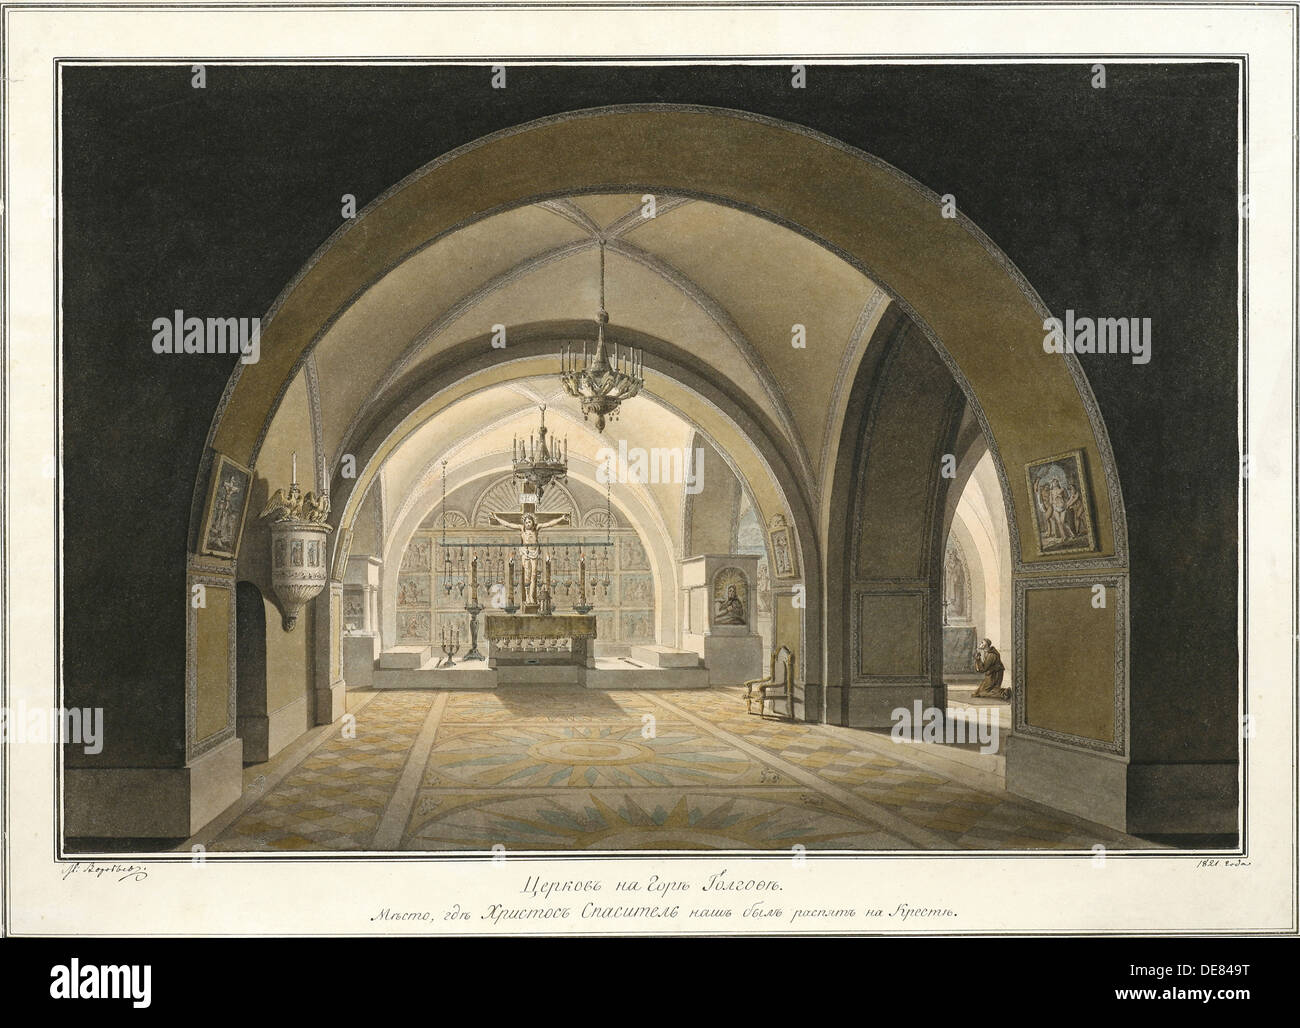 Interior of the Church of the Holy Sepulchre at the site of Golgotha, 1821. Artist: Vorobyev, Maxim Nikiphorovich (1787-1855) - Stock Image